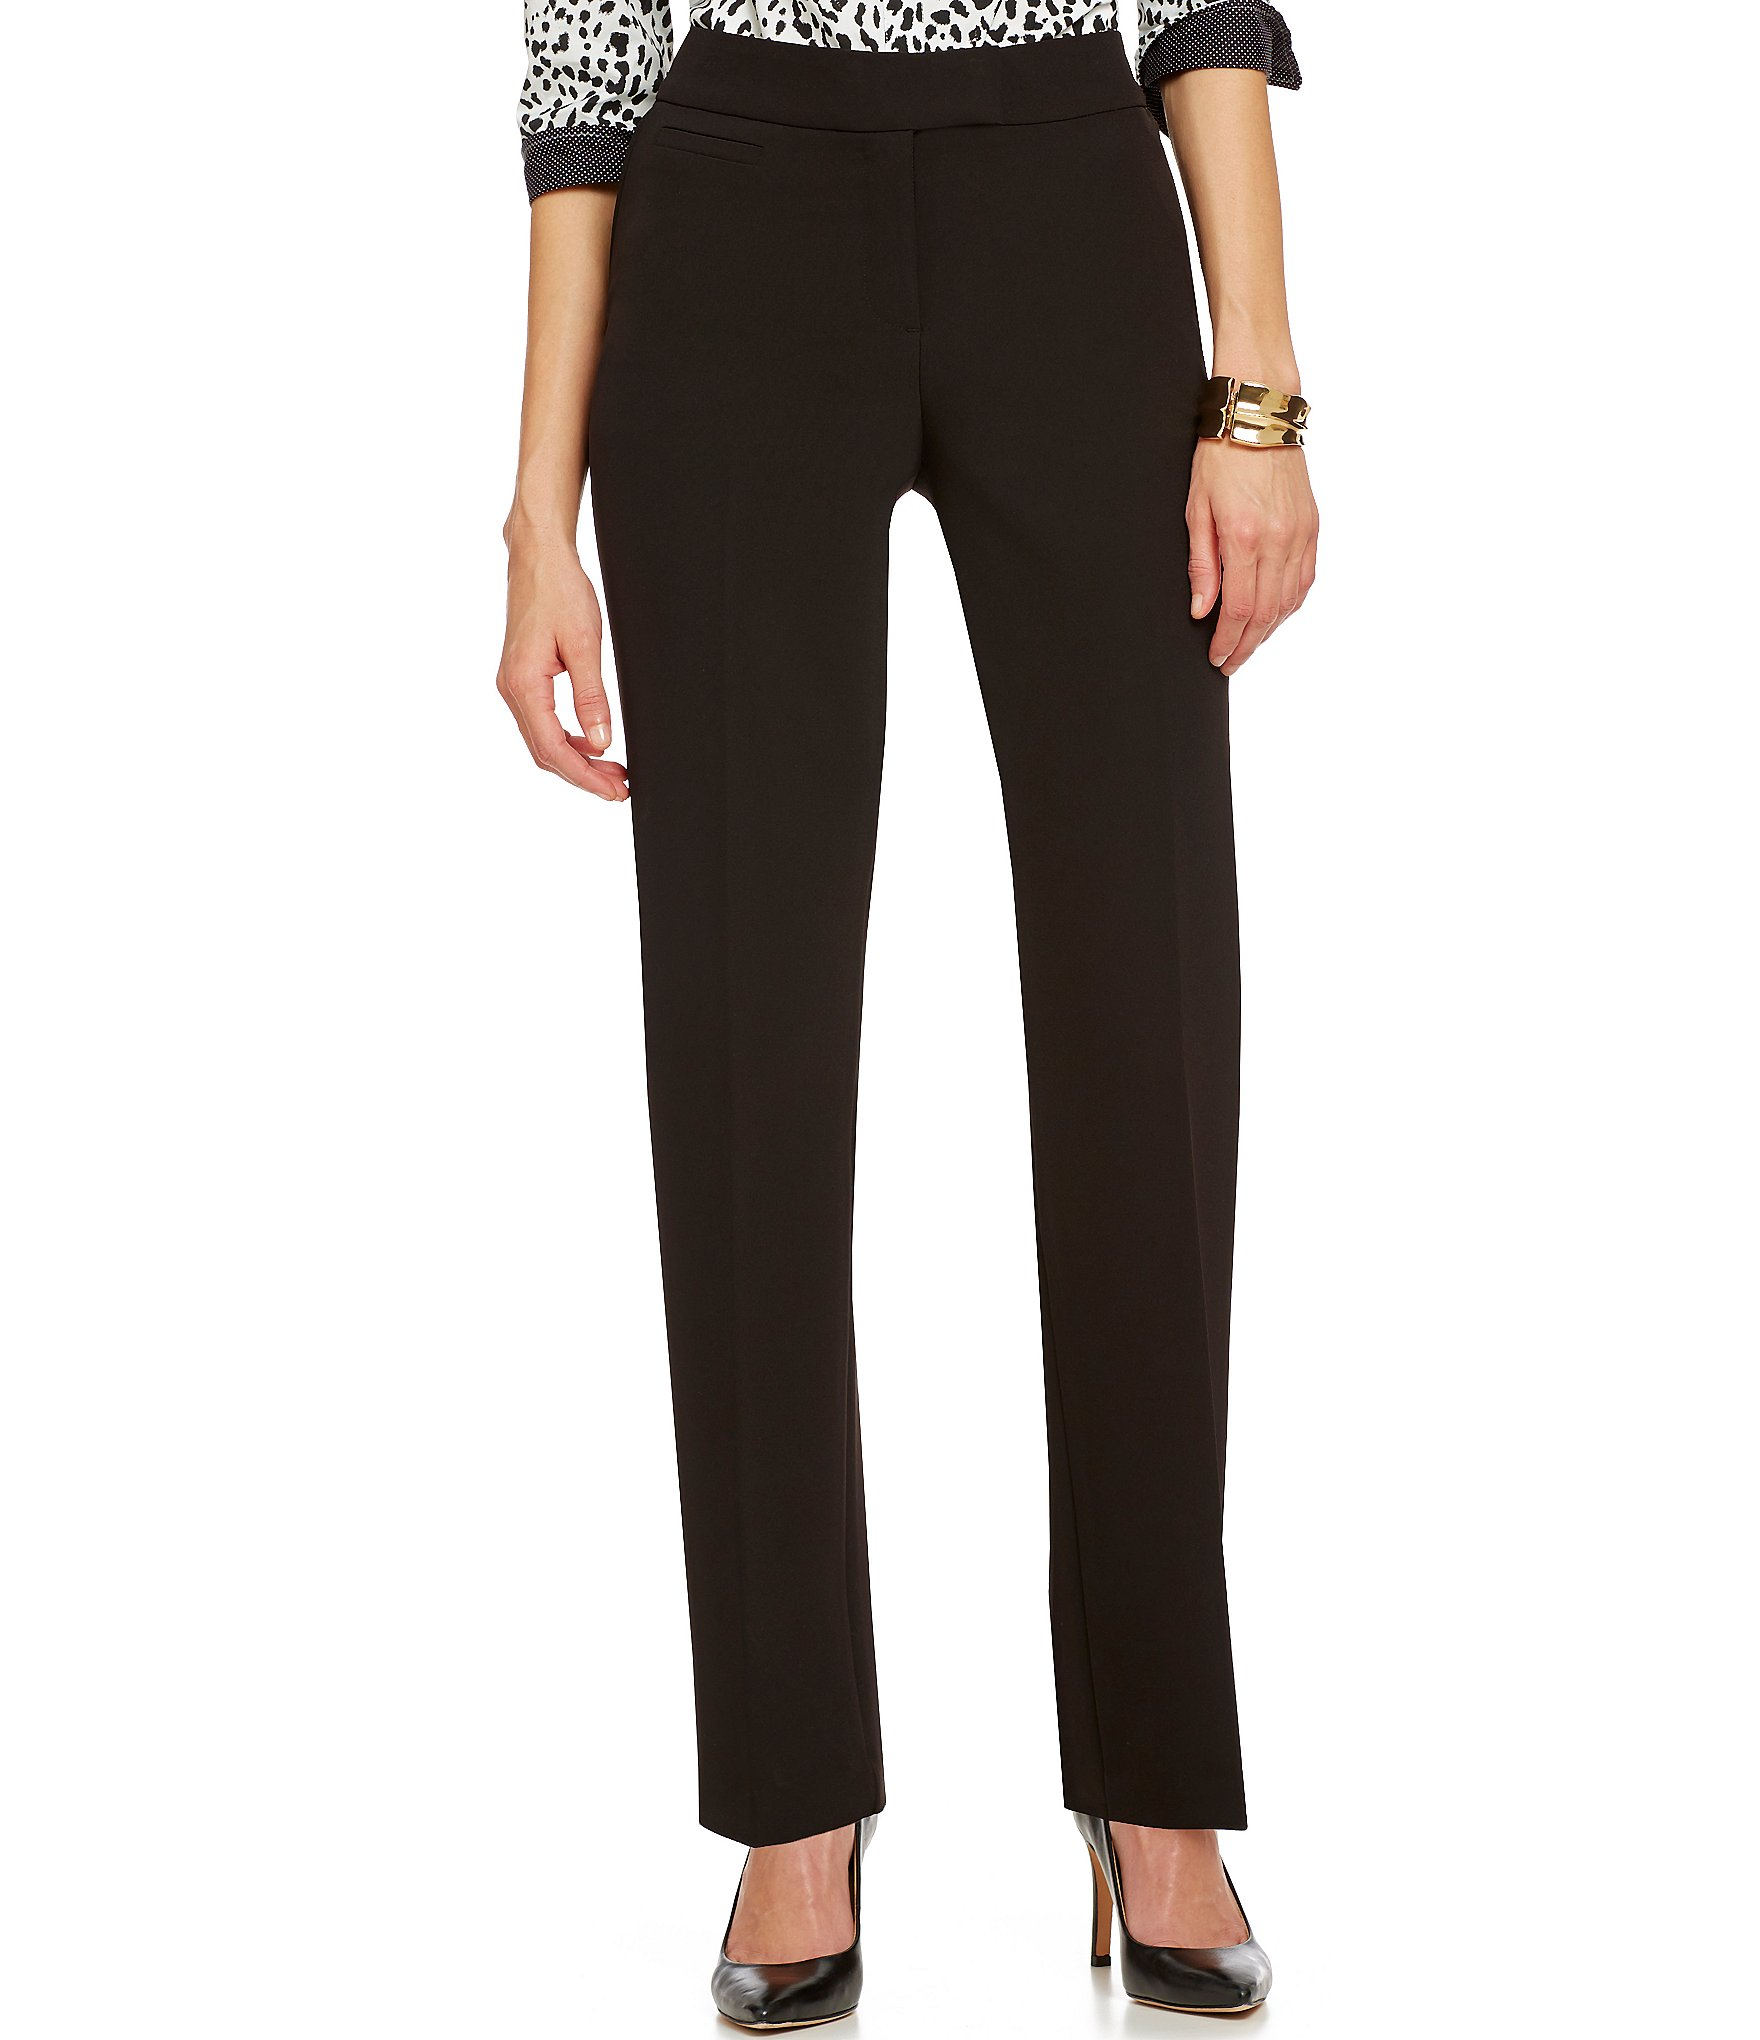 Investments The 5th Ave Fit Wrinkle Free Straight Leg